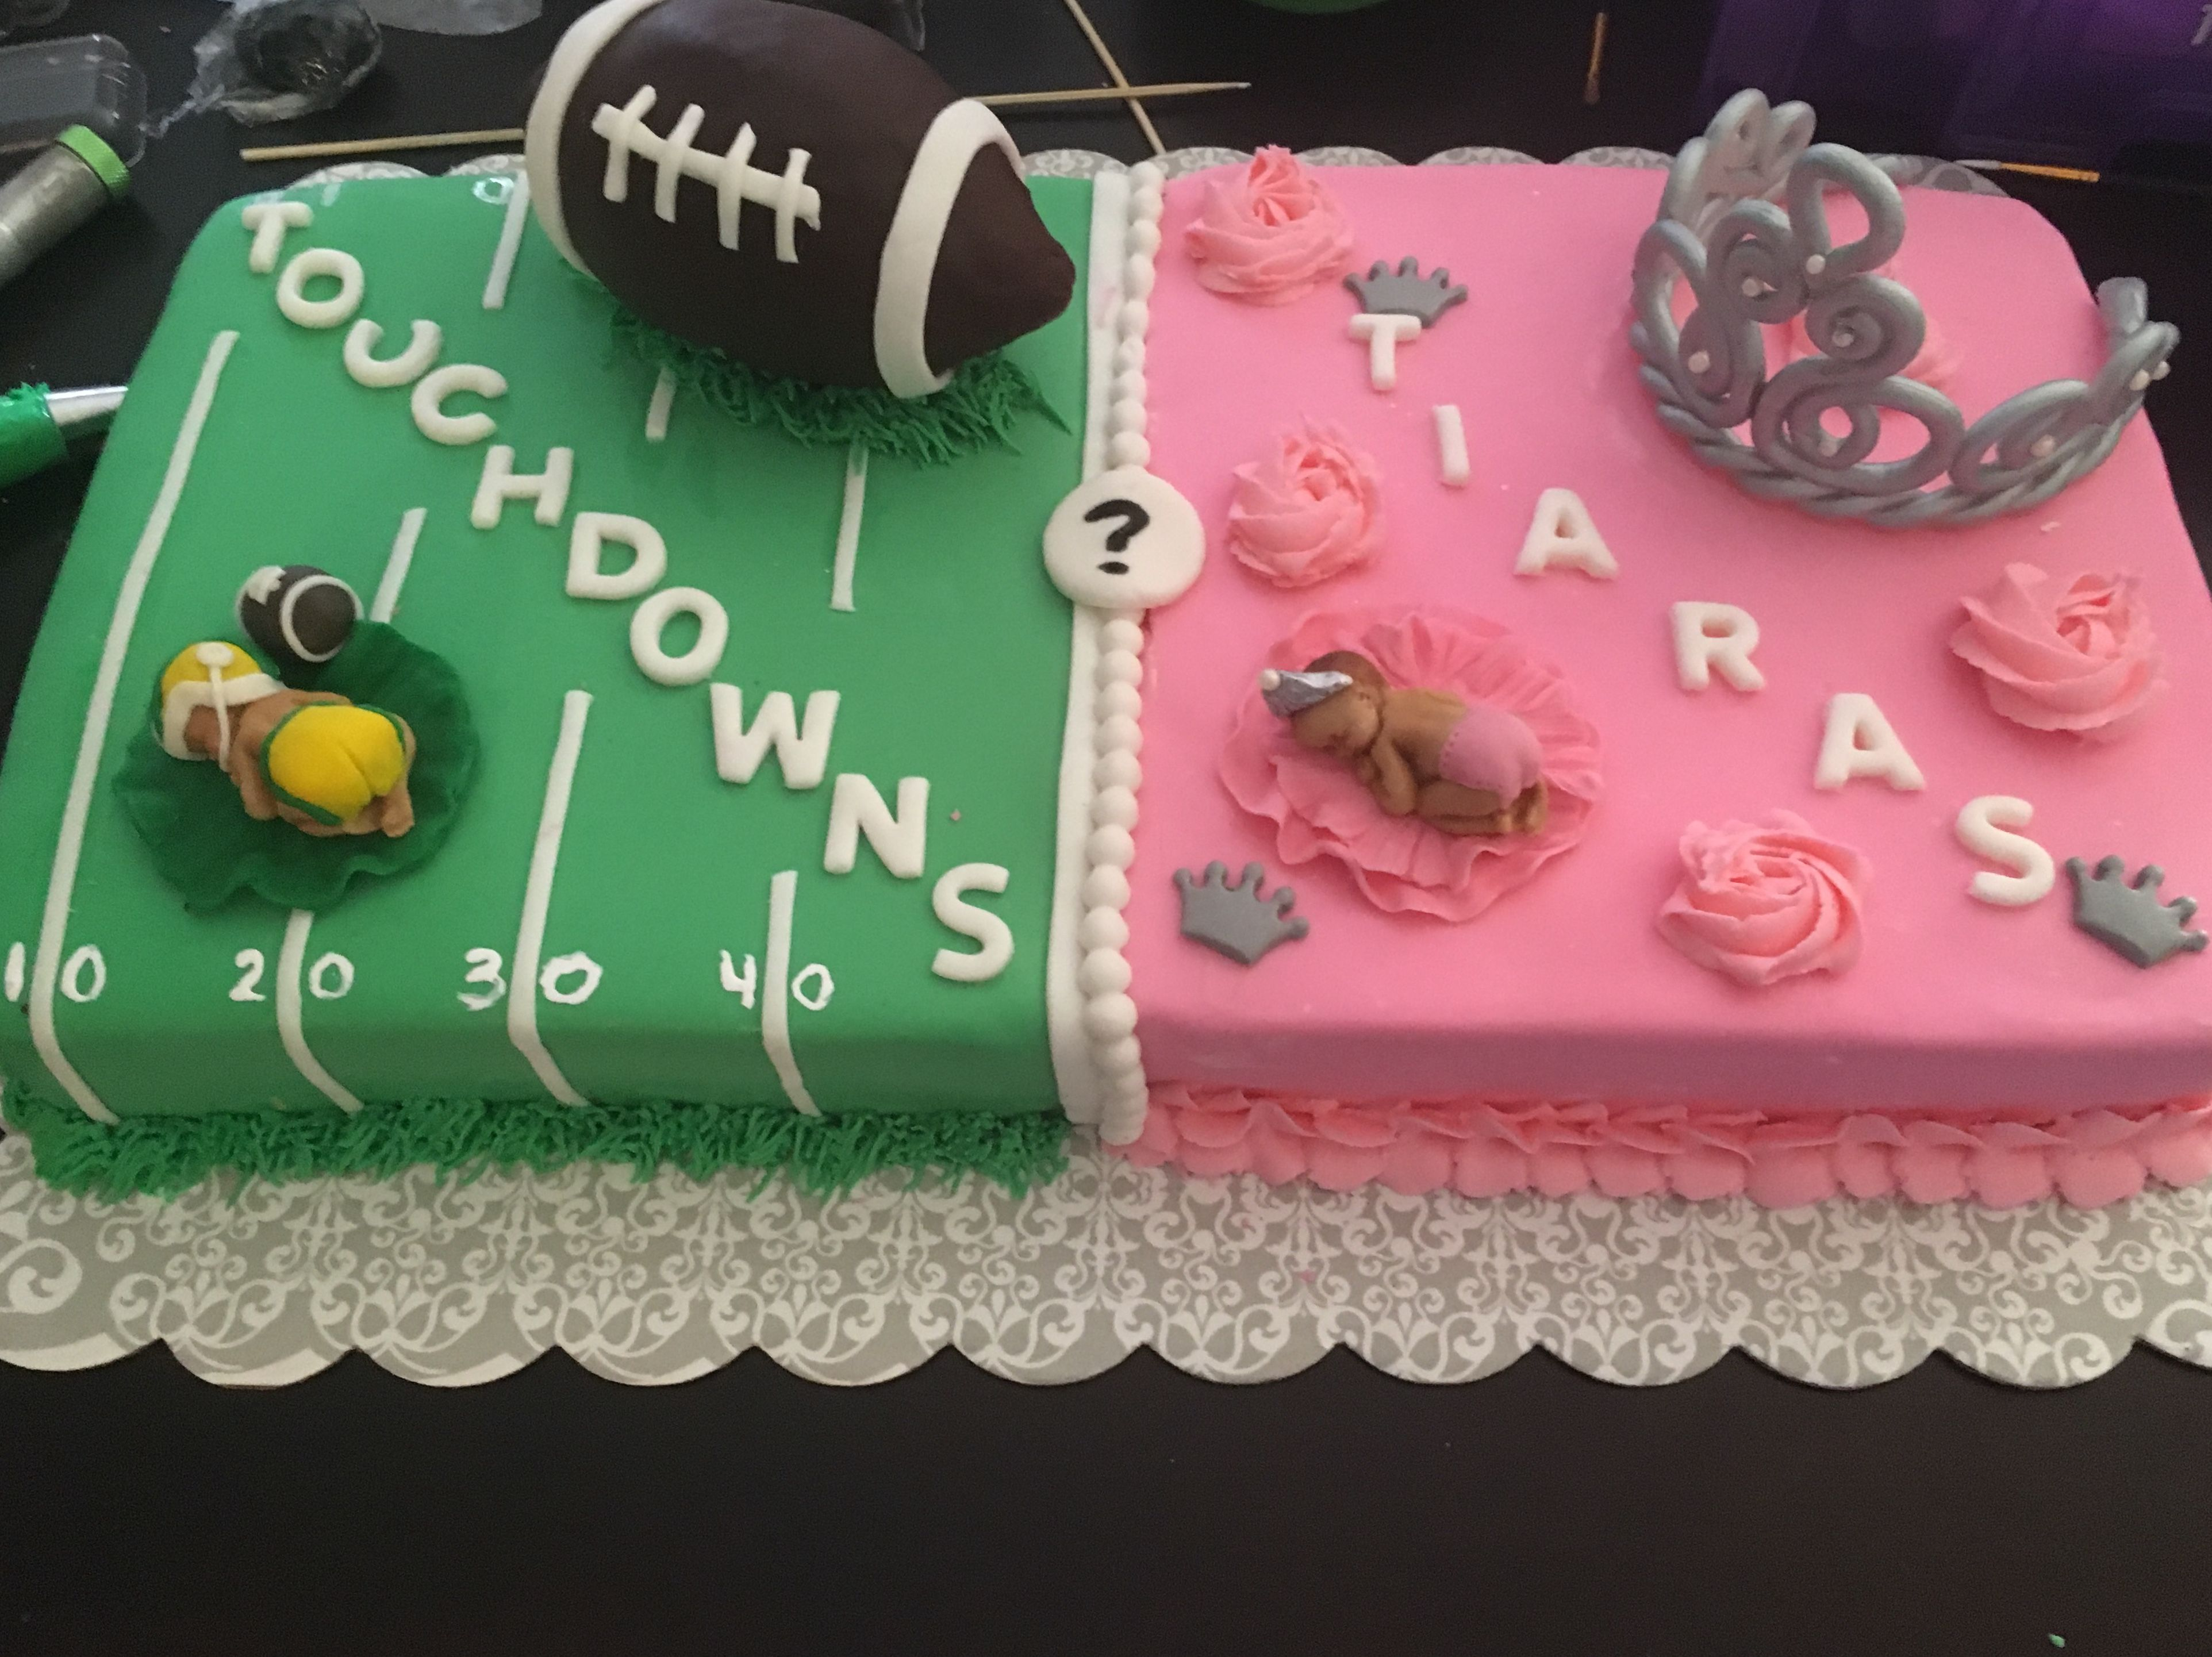 Touchdowns Or Tiaras Cake Gender Reveal Gender Reveal Cake Gender Reveal Party Theme Gender Reveal Party Games